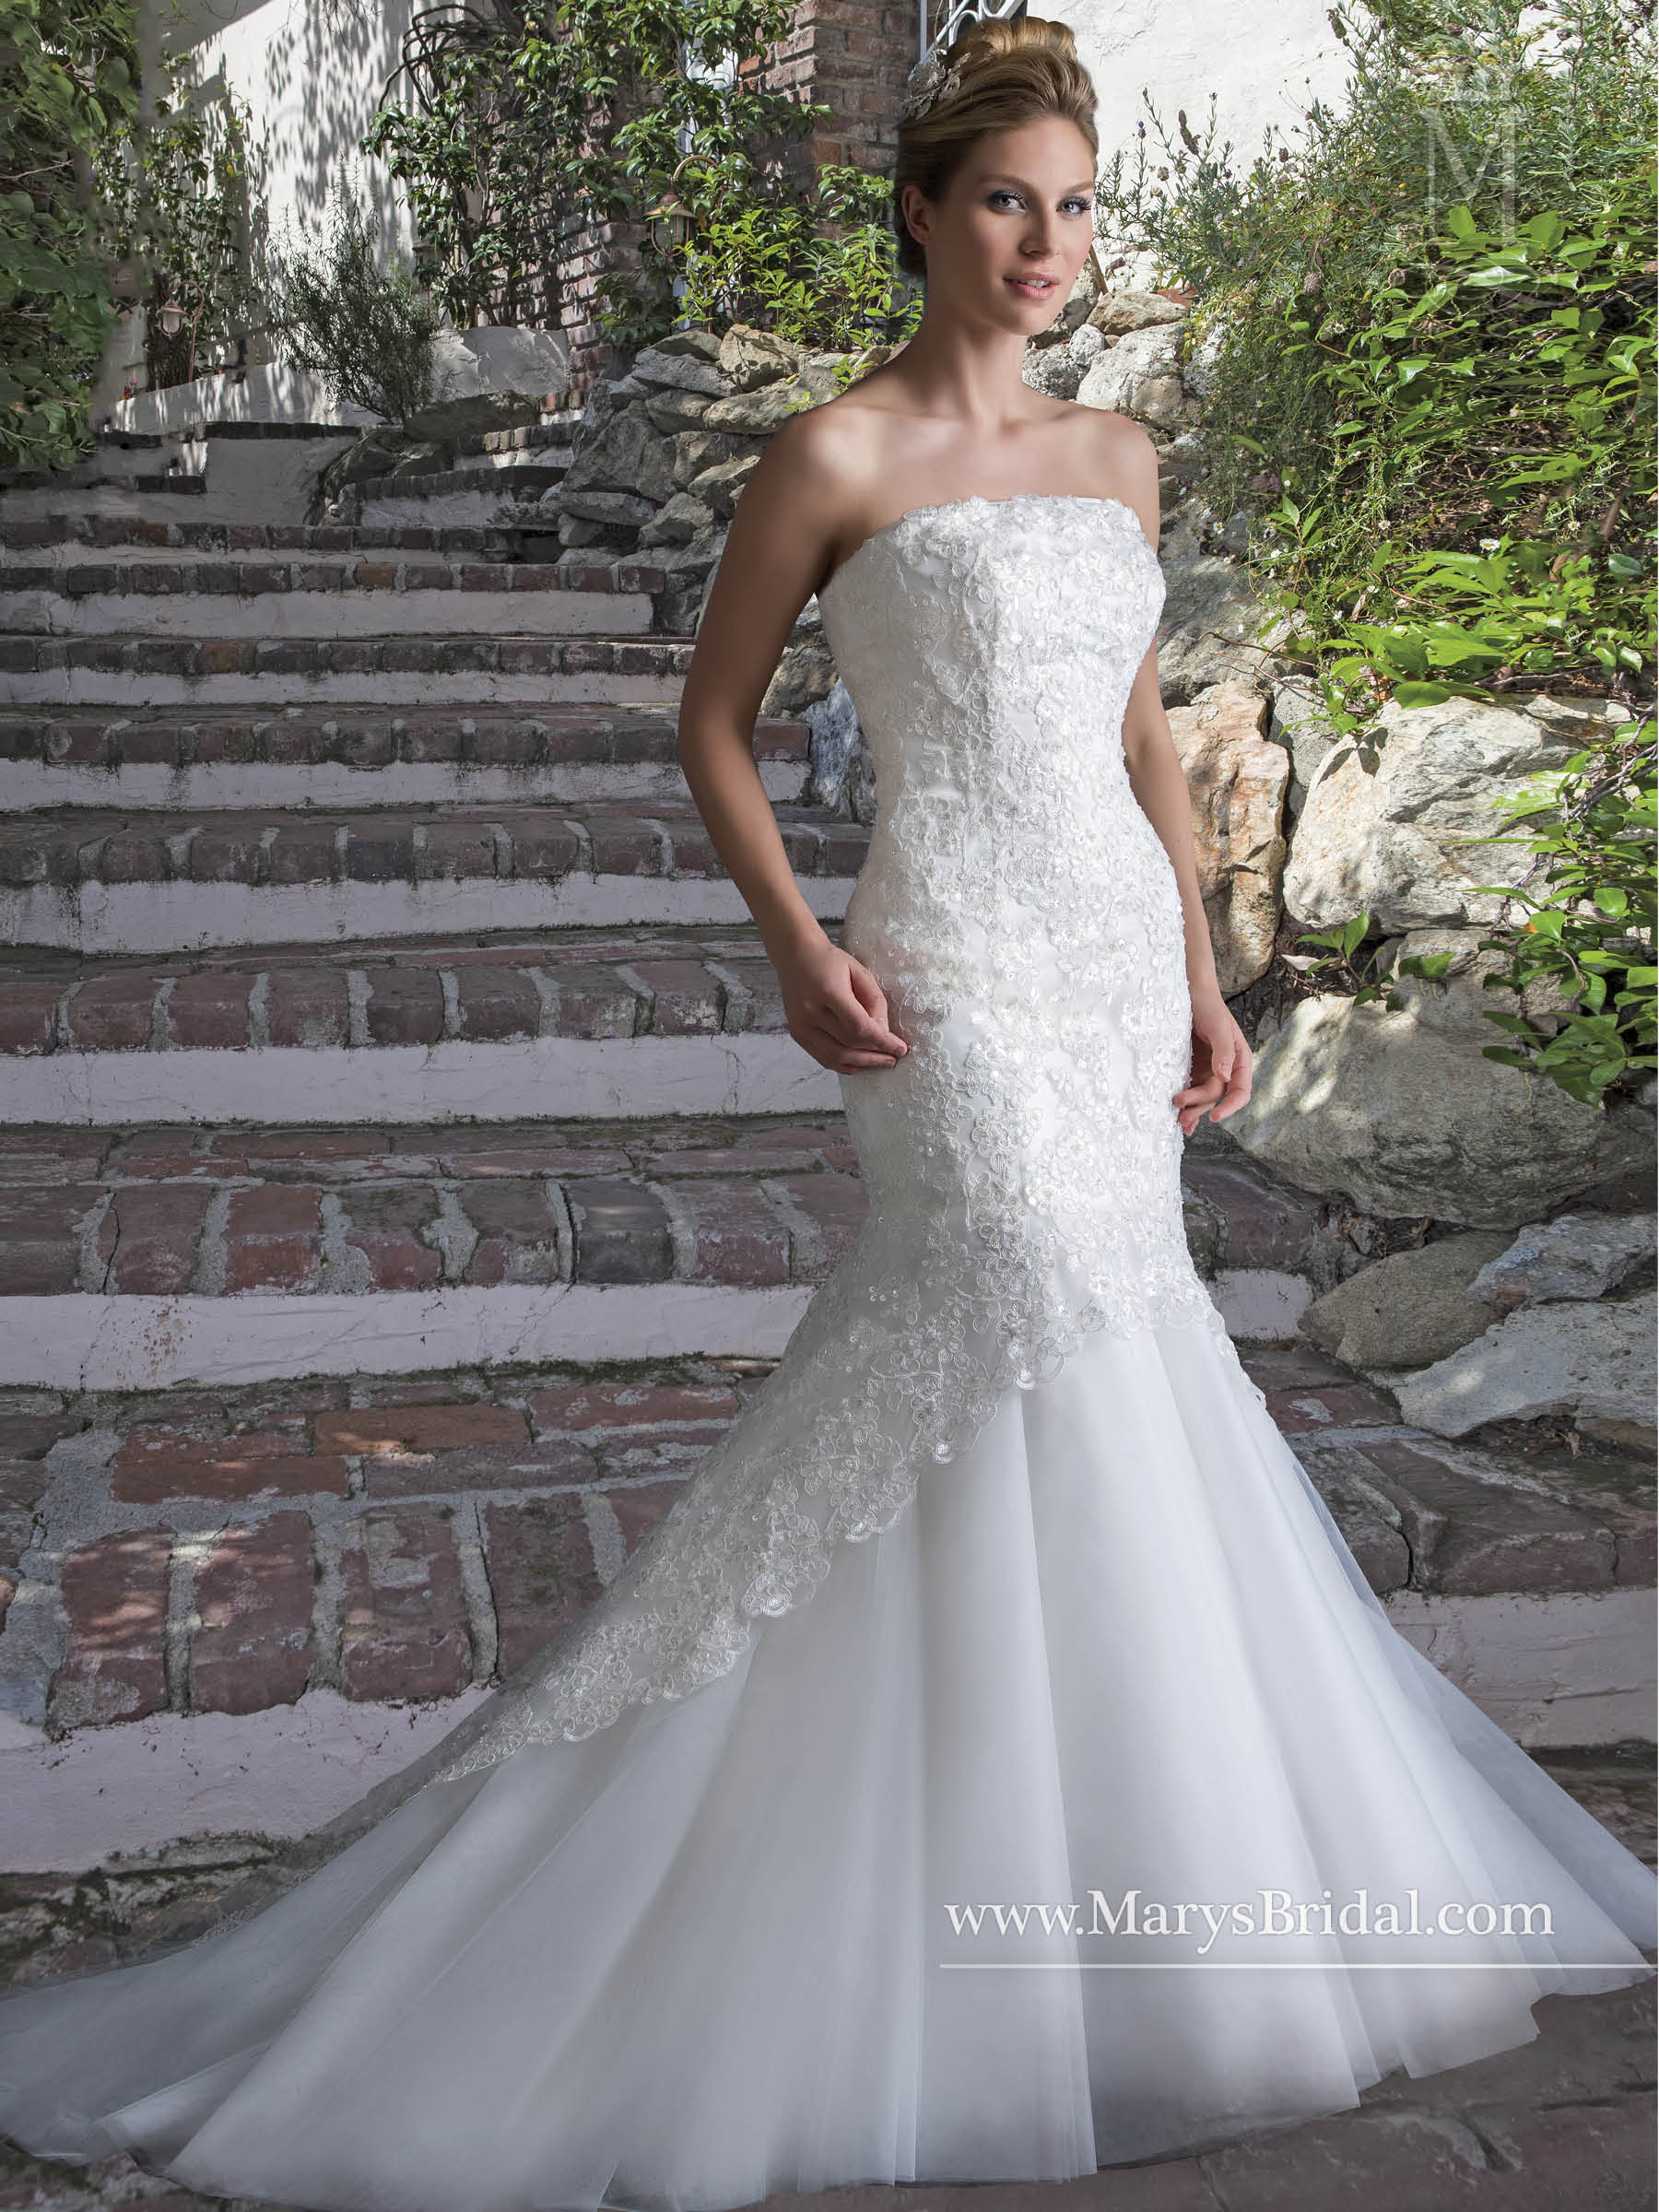 Bridal Wedding Dresses   Style - 6525 in Ivory or White Color